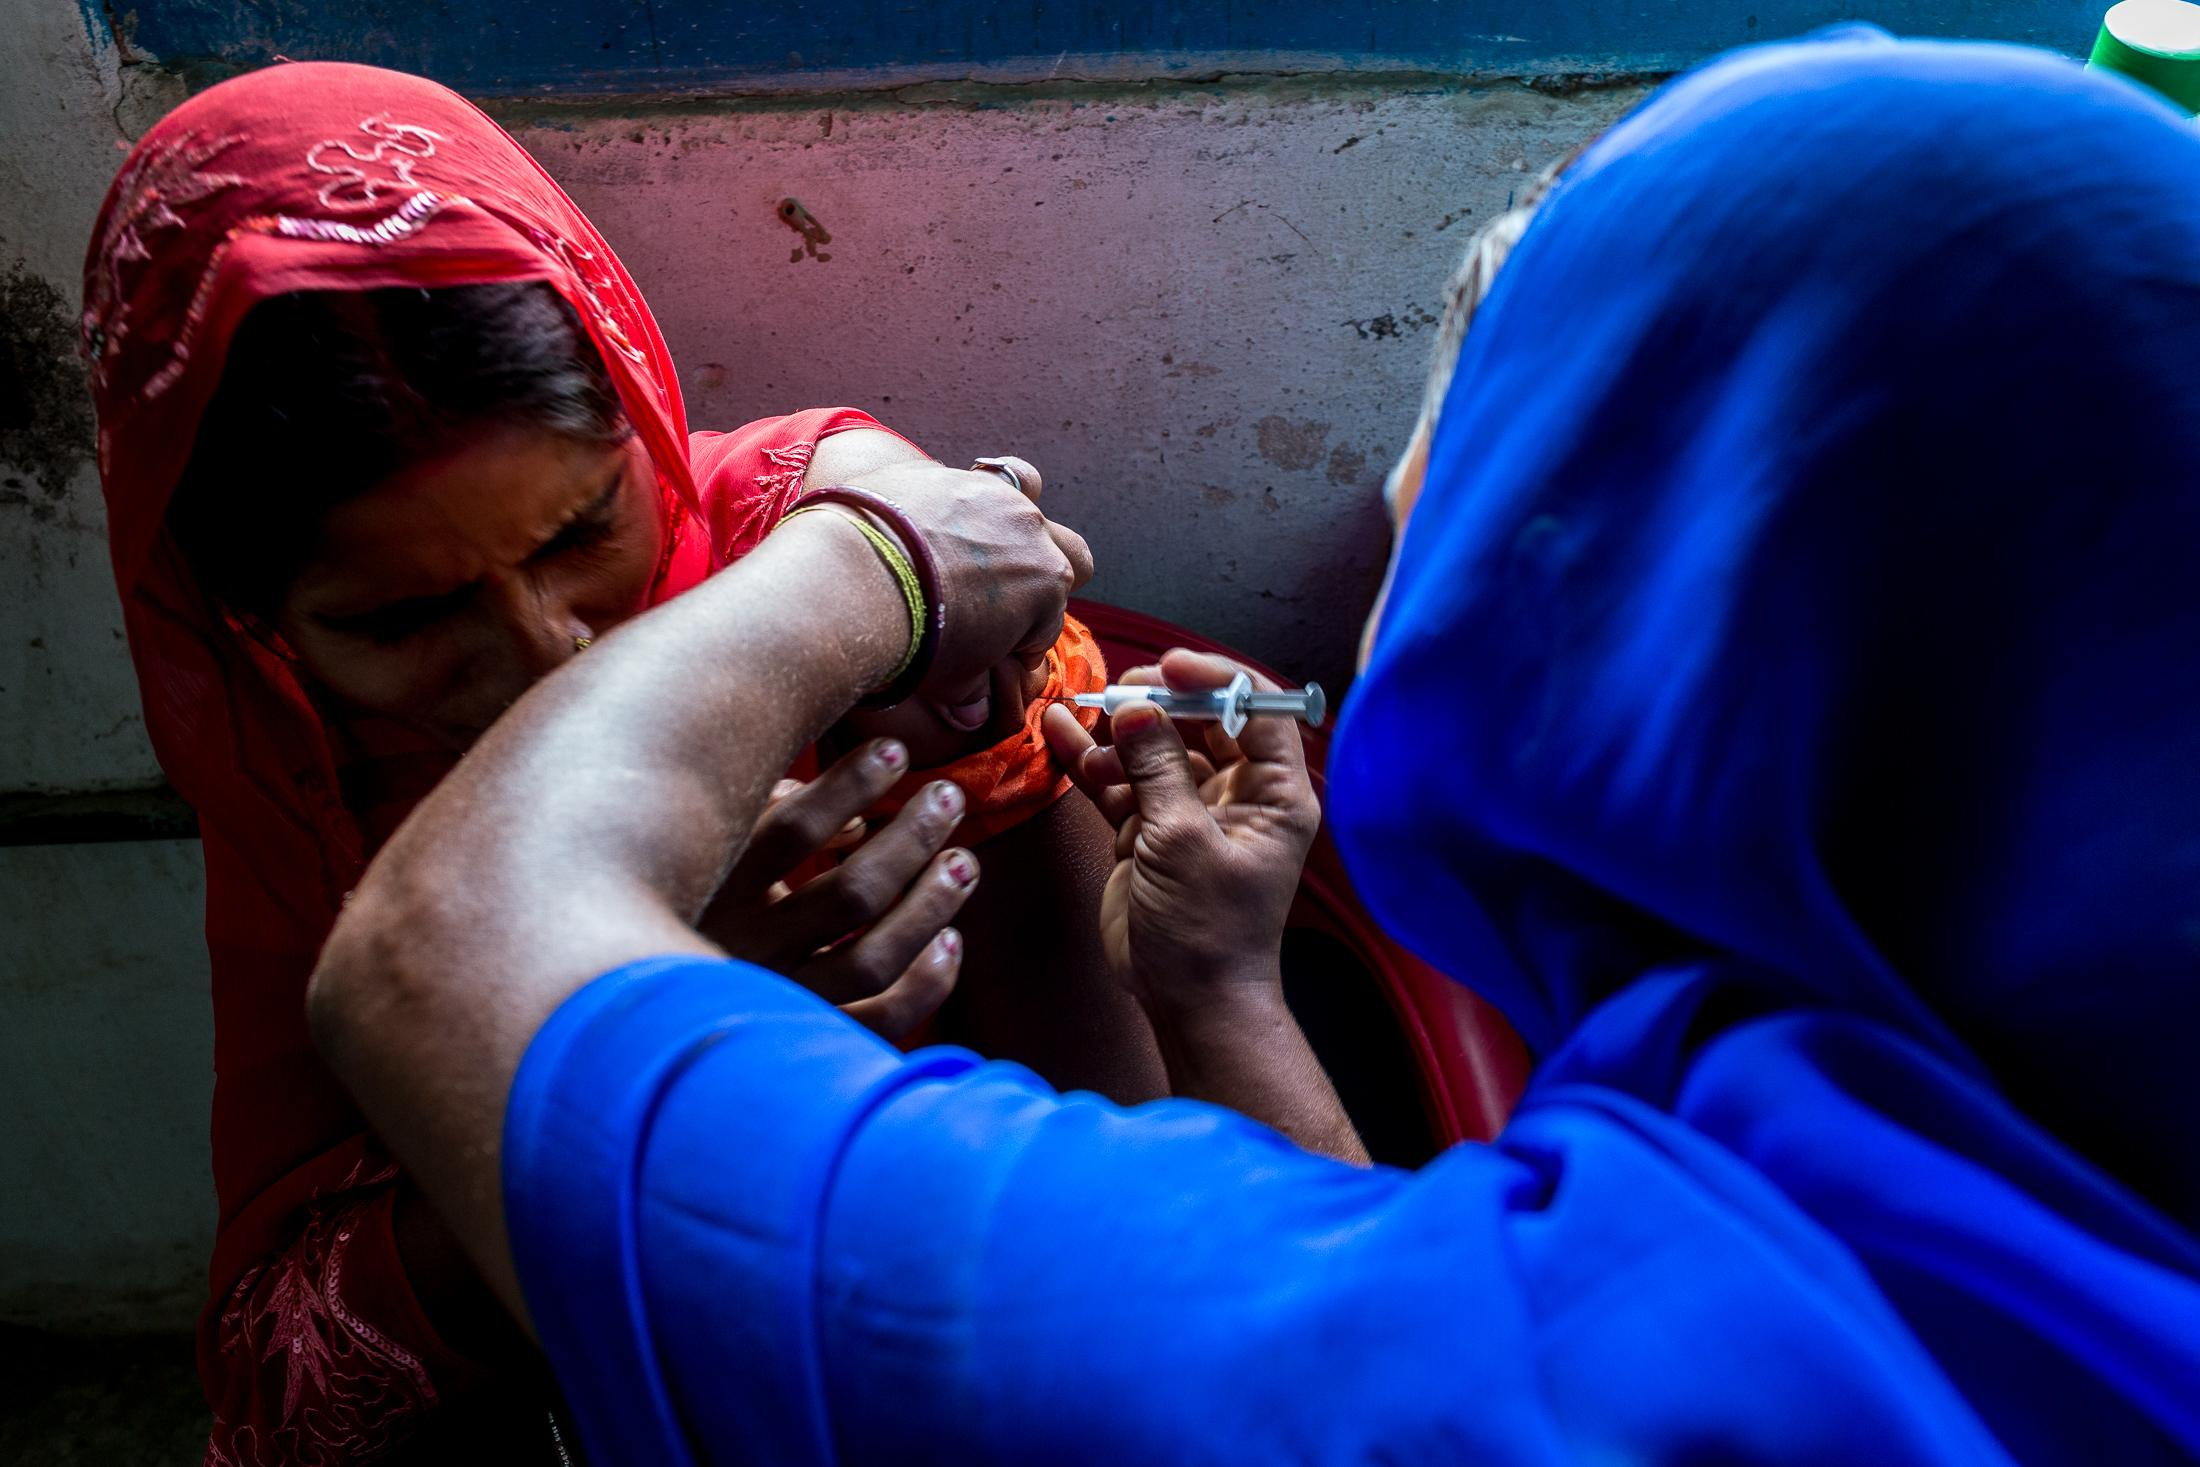 JANAKPUR, NEPAL - JULY 23: A young Maithil woman receives an injection in her arm from a Maithil woman working as a nurse in a local clinic in a remote village on July 23, 2015 near Janakpur, Nepal. Photo: © Omar Havana